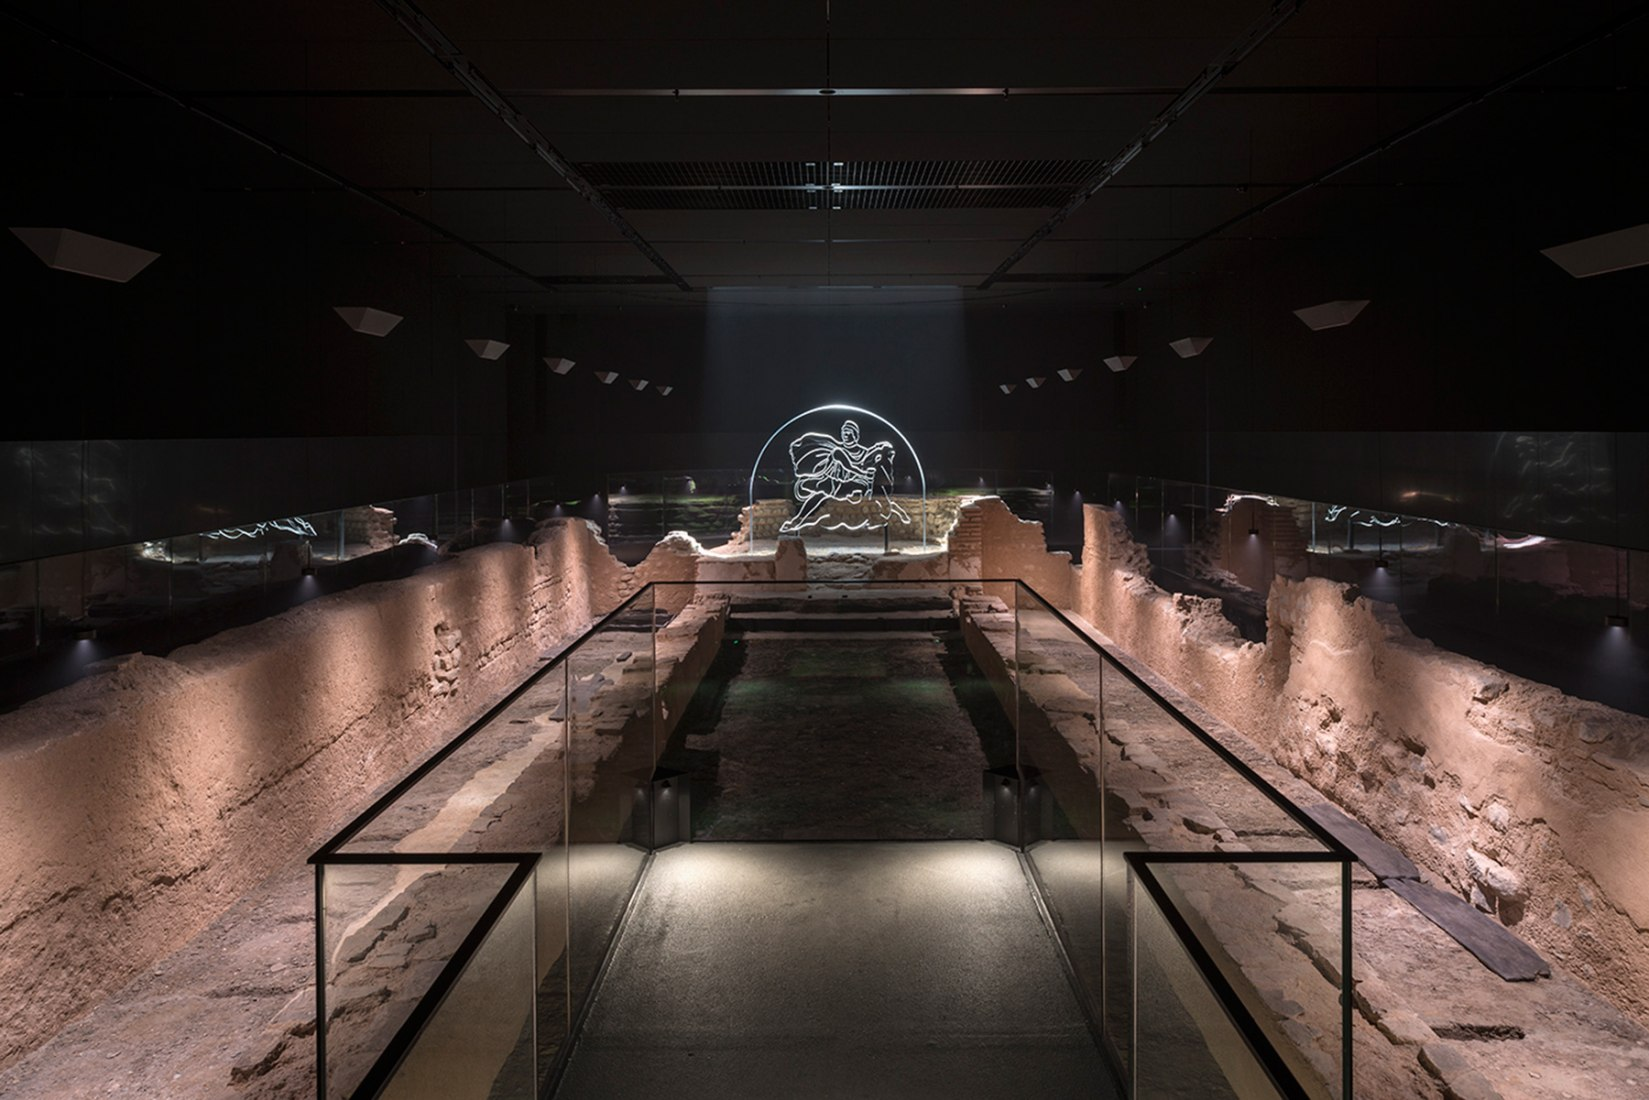 London Mithraeum is a faithful reconstruction of the Temple of Mithras as it stood on this site nearly two thousand years ago. Photograph by James Newton. Image courtesy of London Mithraeum Bloomberg SPACE